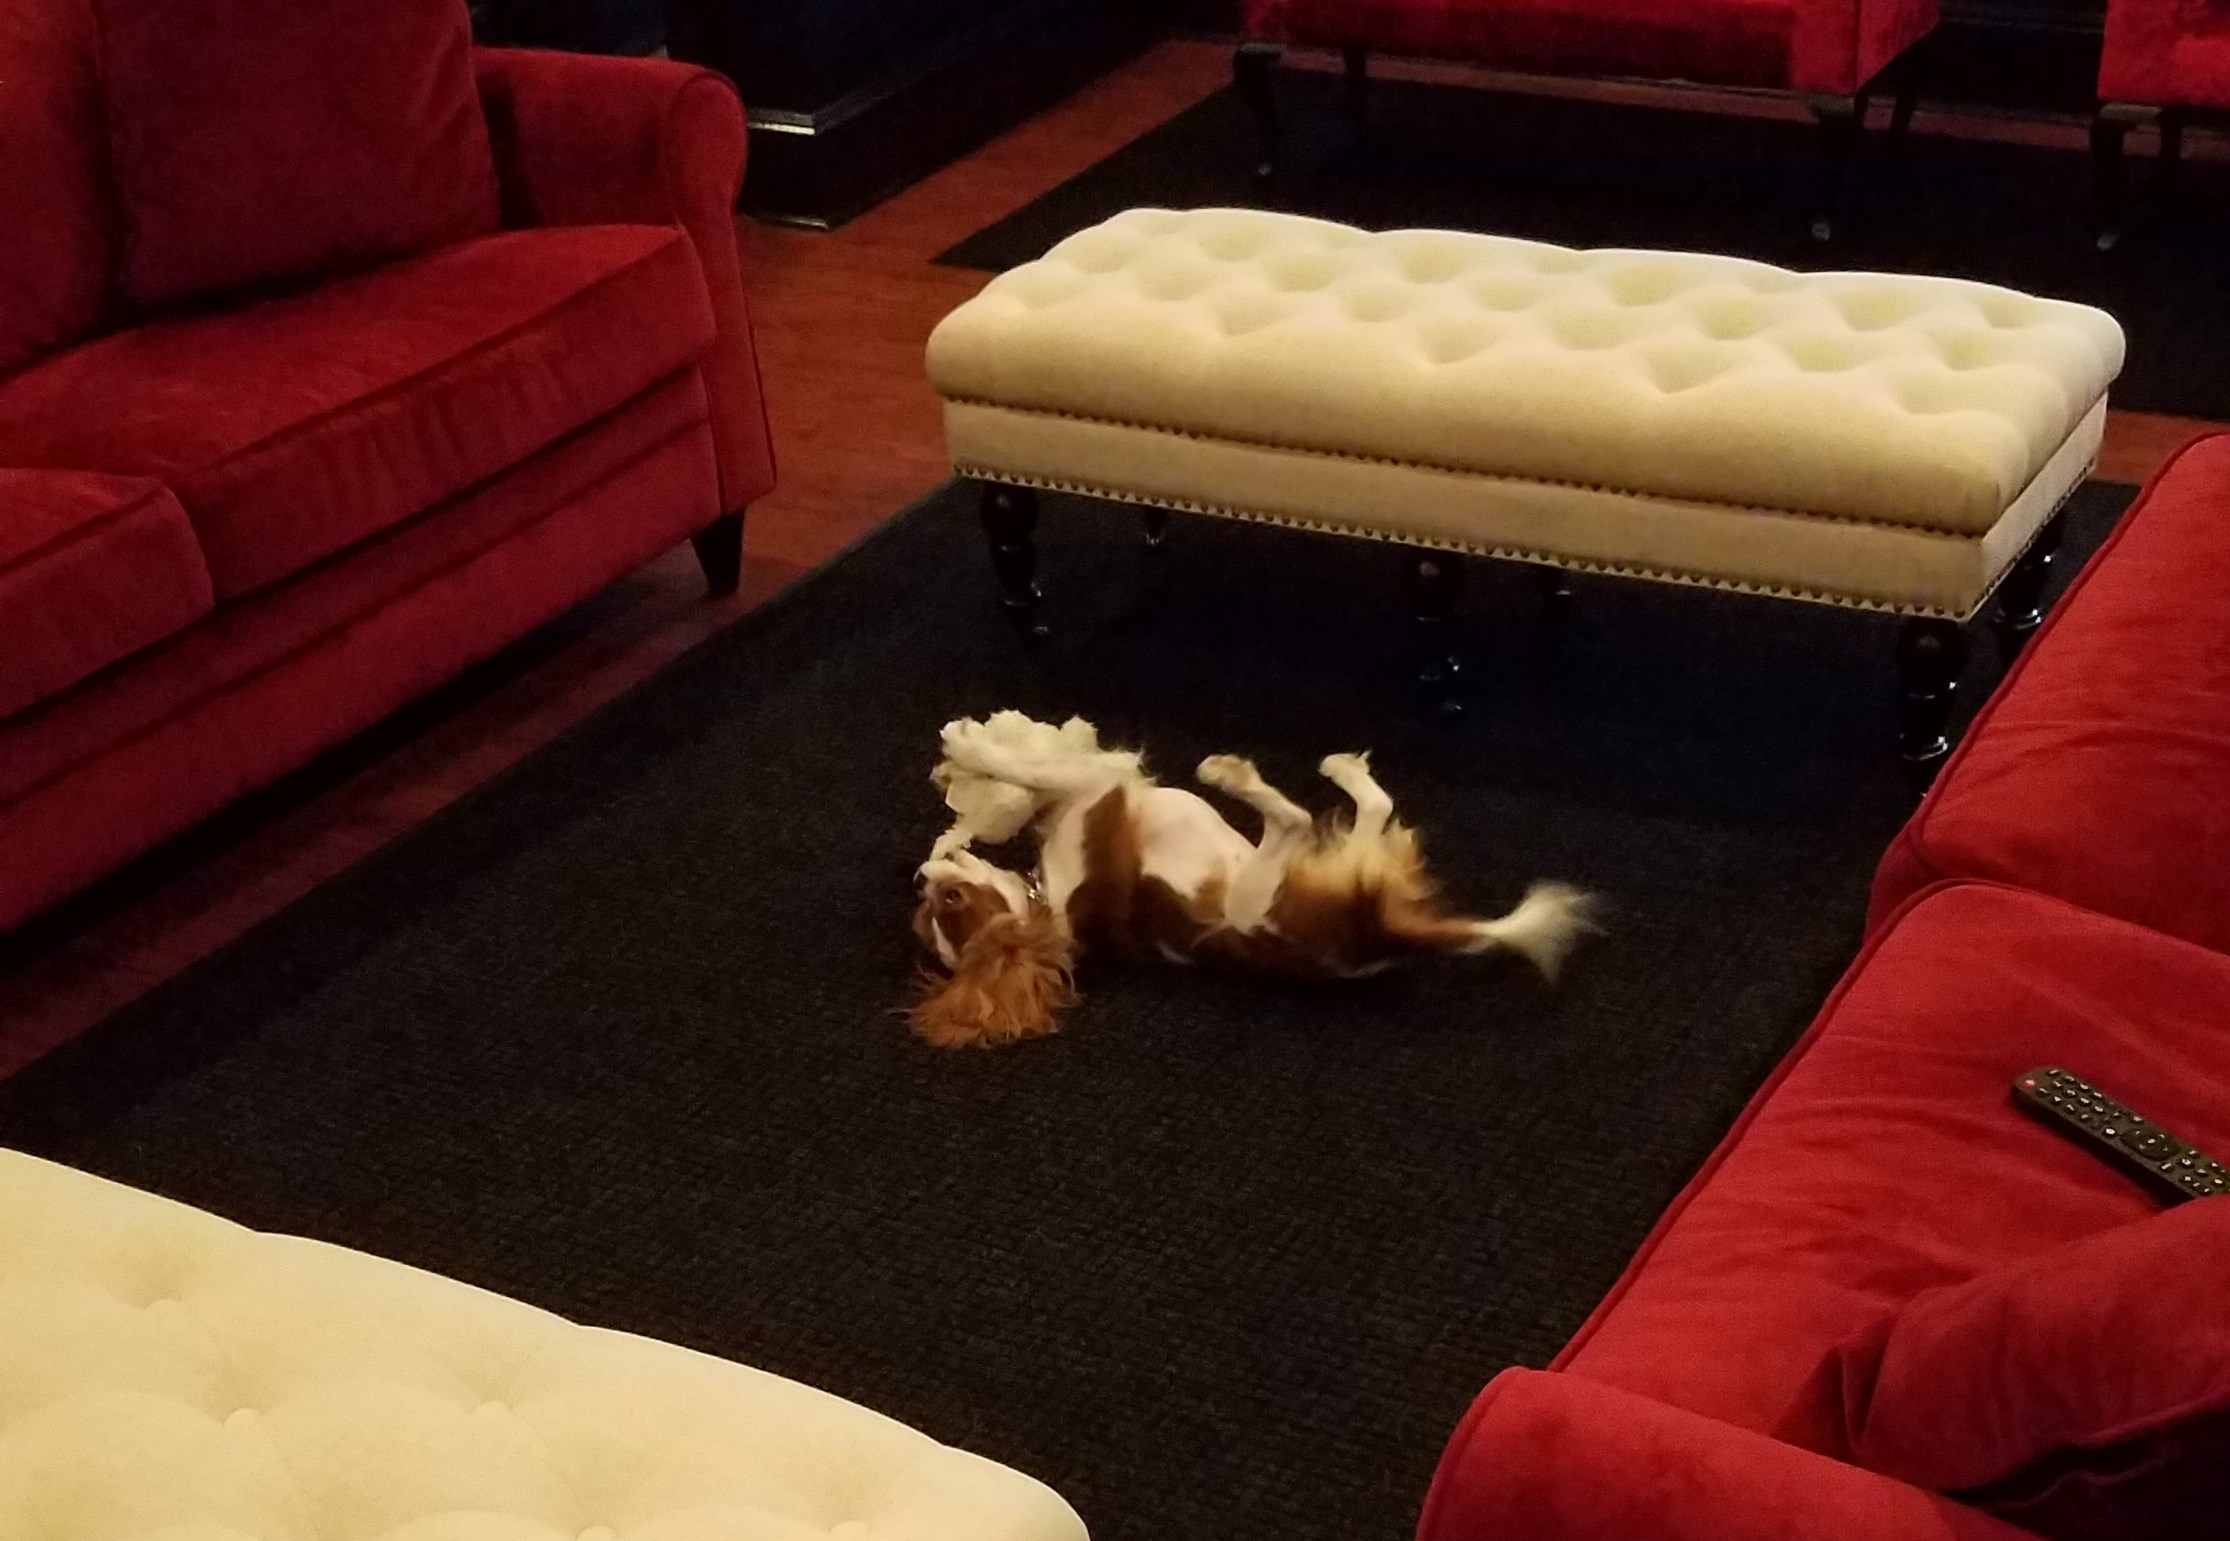 Goldie on her back playing with chew toy on the center carpet at the executive dog lounge.